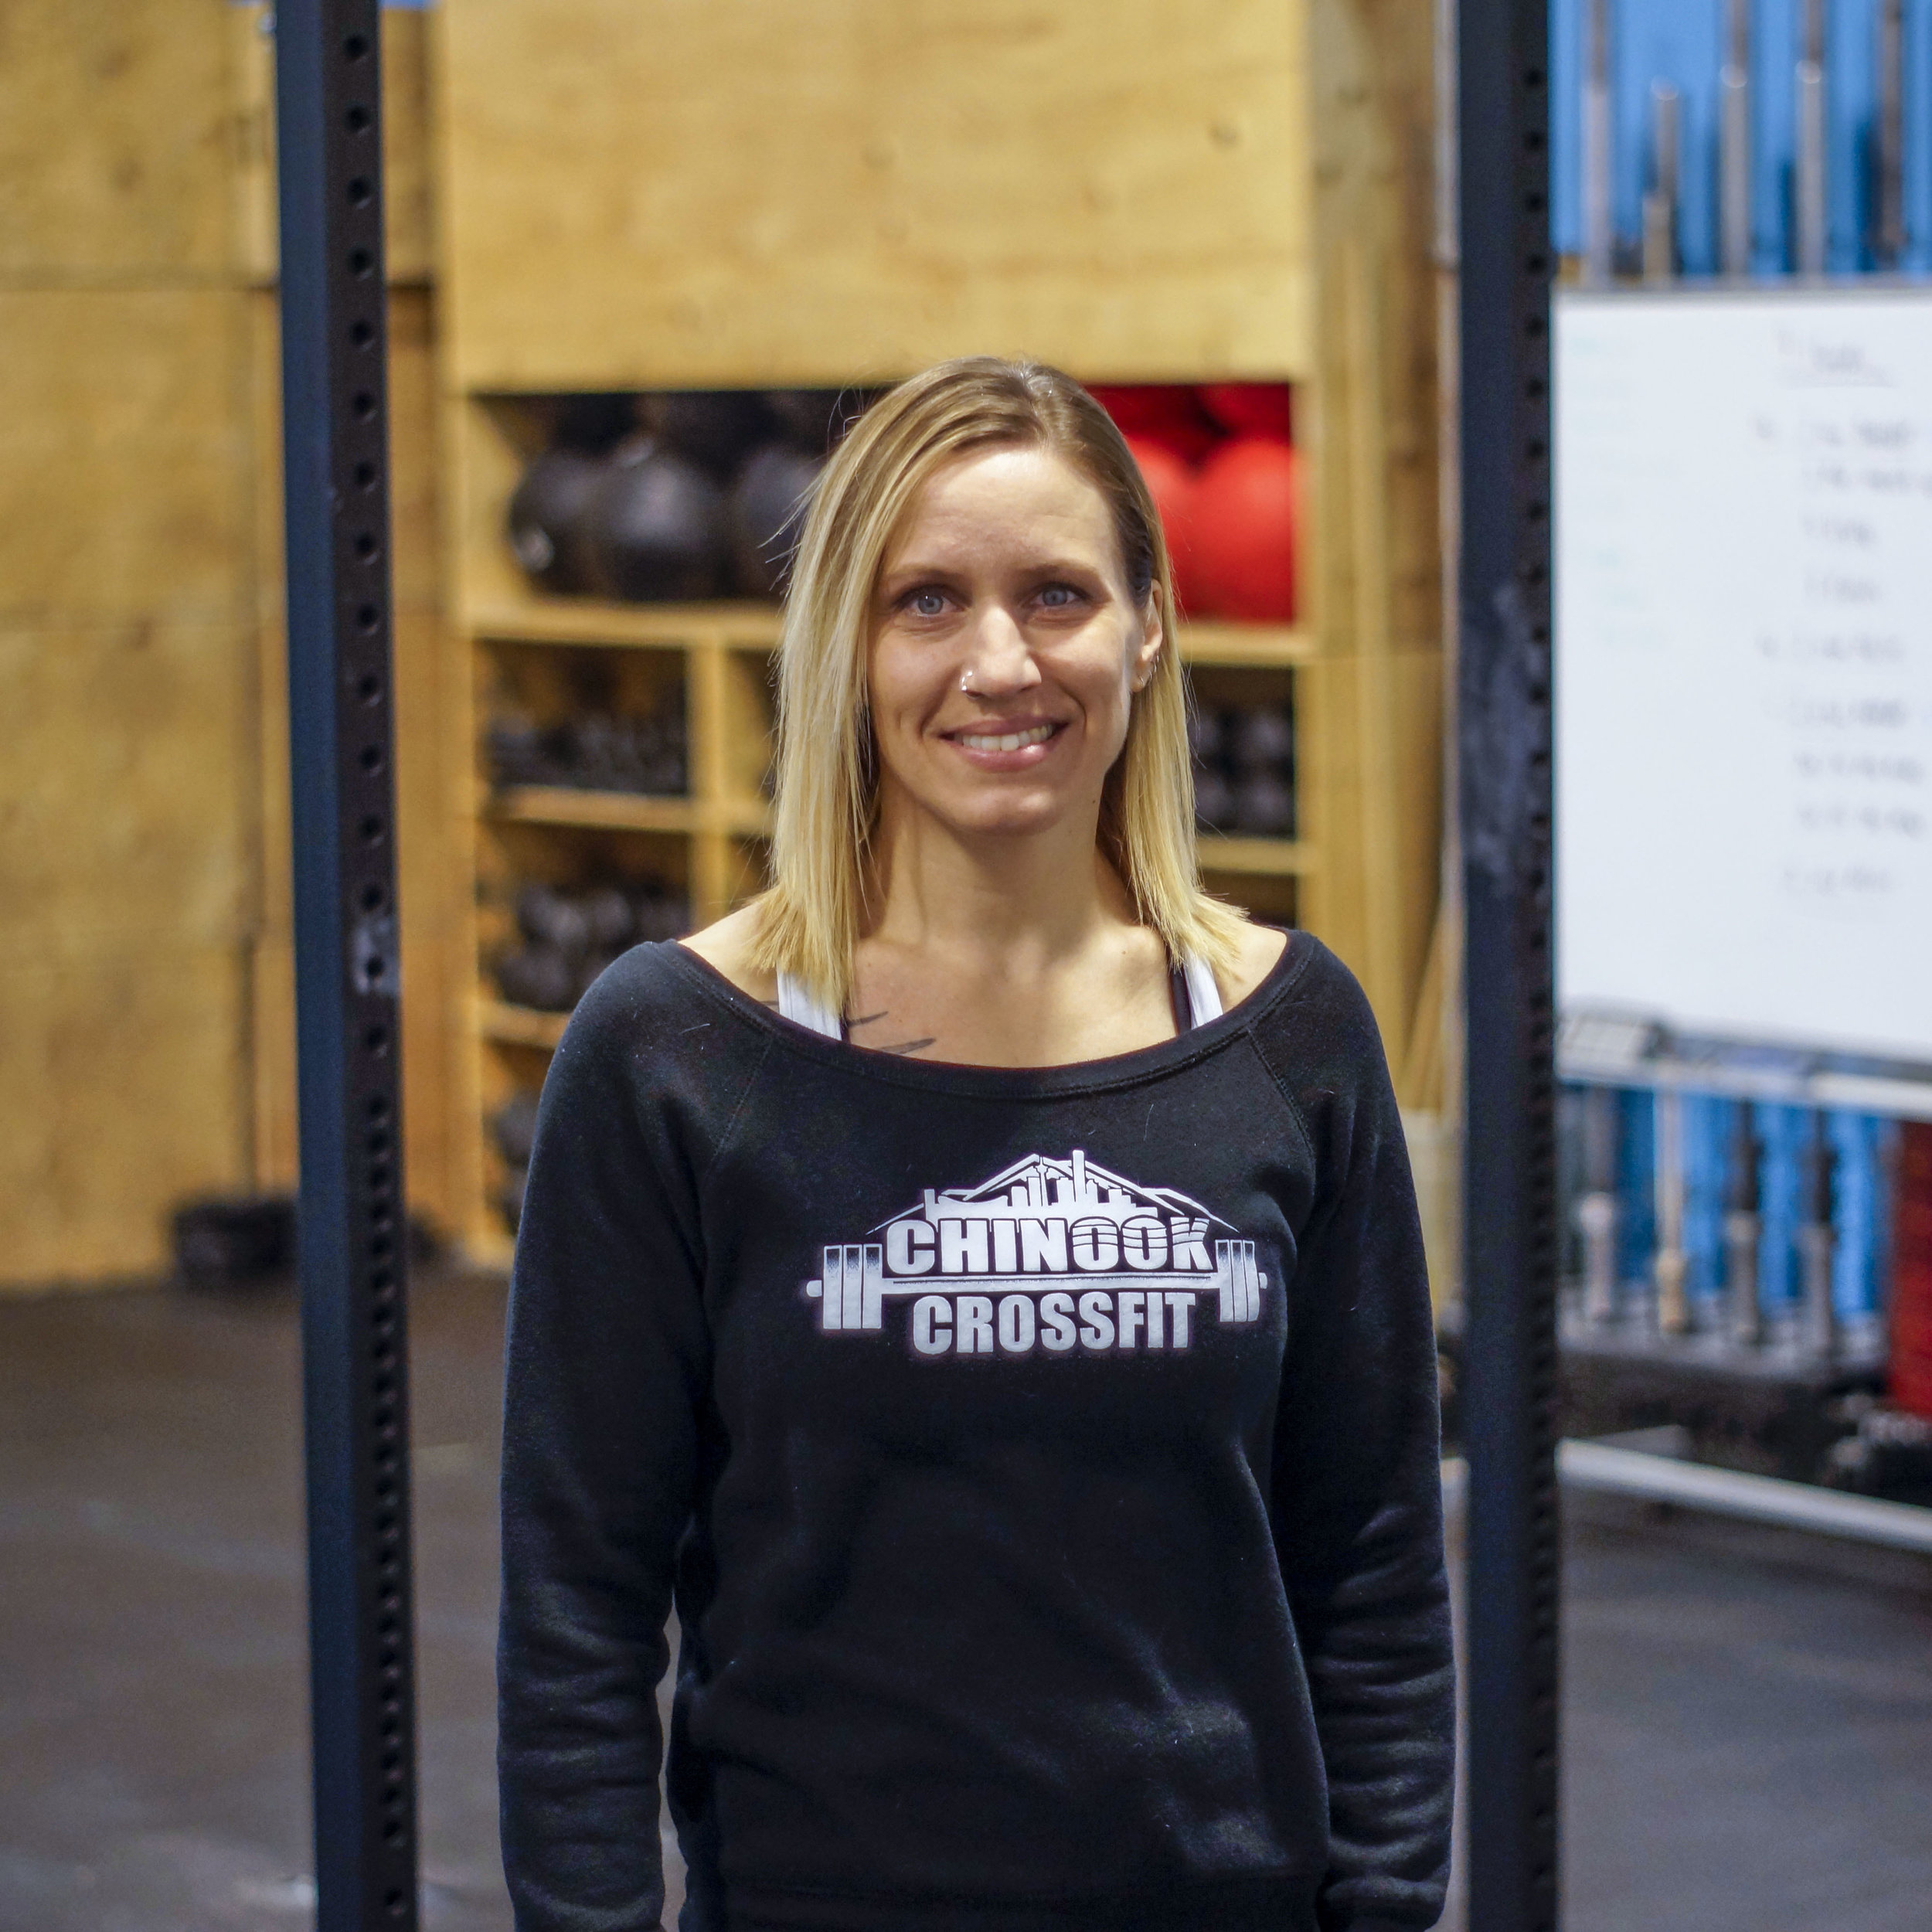 JOLAINE WEST - COACHI discovered Crossfit in 2012 and immediately fell in love with the culture and comradery. I was drawn into competing, first in a team environment, and then into individual competitions. Today, I enjoy using my experience as a competitor to help Chinook Crossfit athletes learn new skills and achieve their best. I am passionate about fitness and health and love helping others achieve their goals.CrossFit Level 1 Trainer